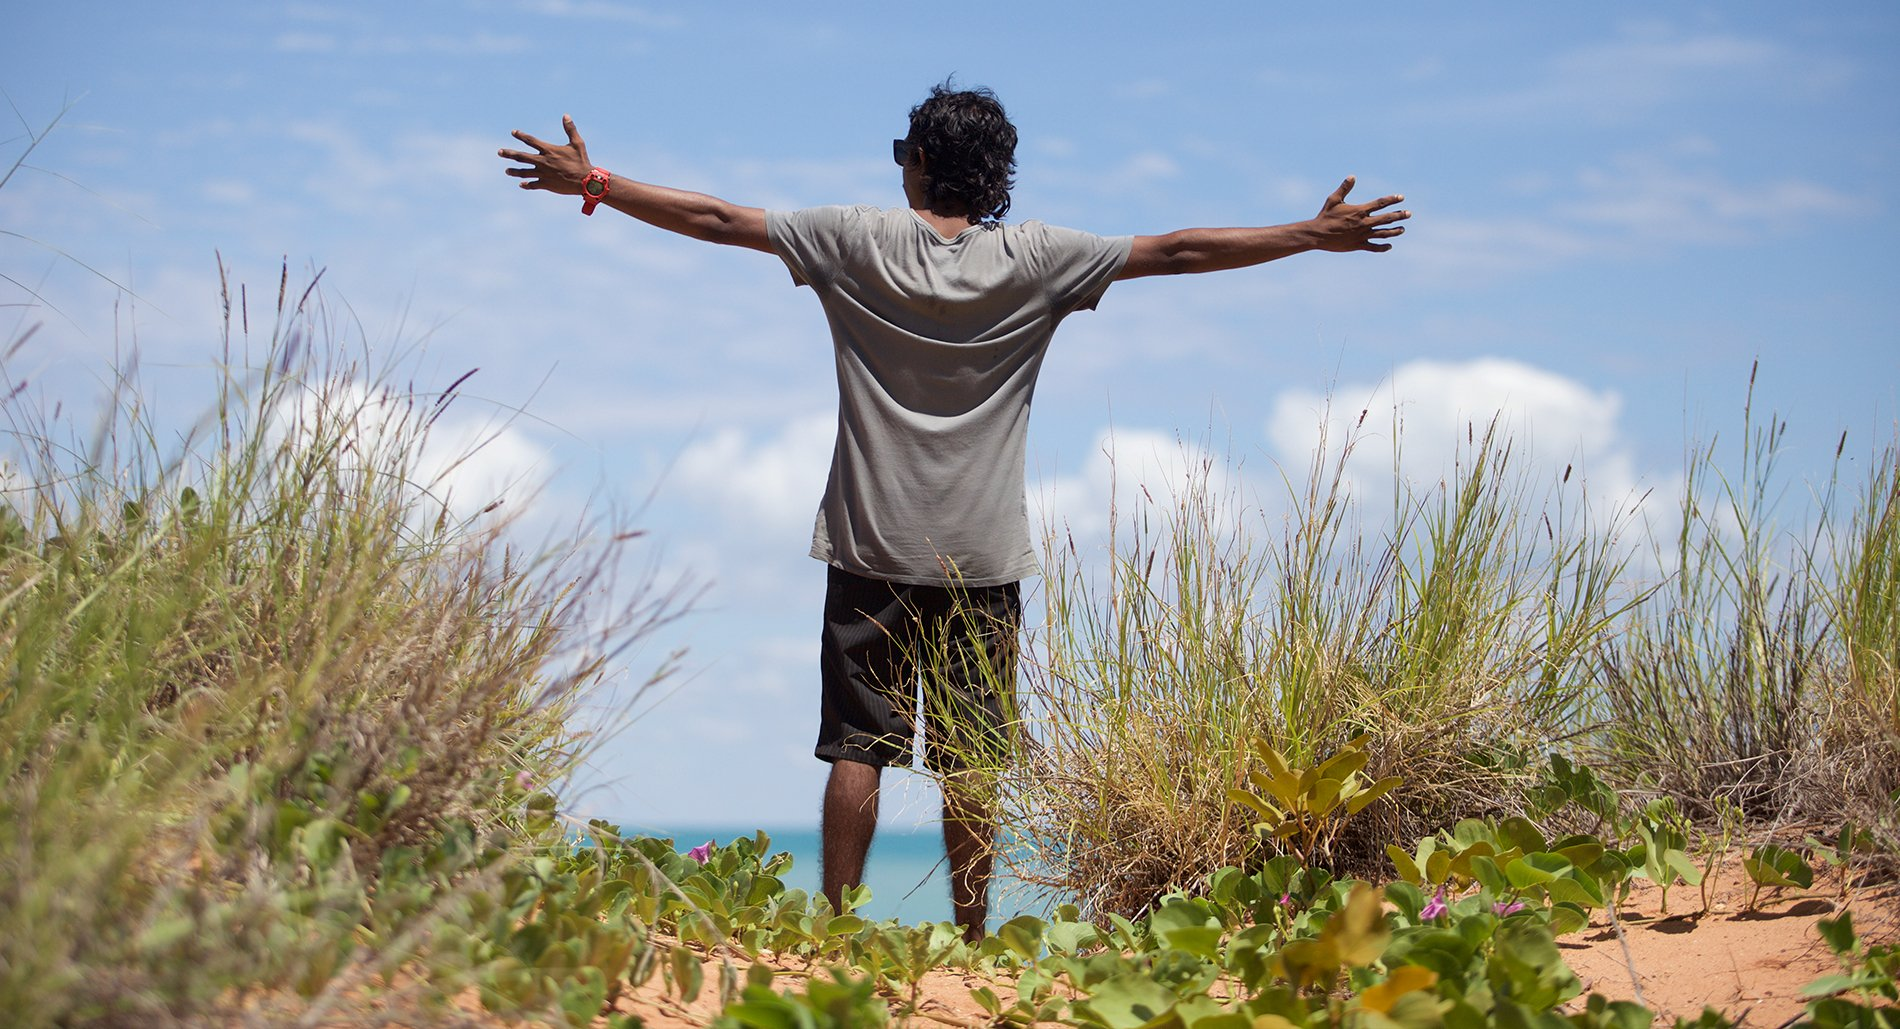 A young Indigenous man with his arms outstretched toward the ocean